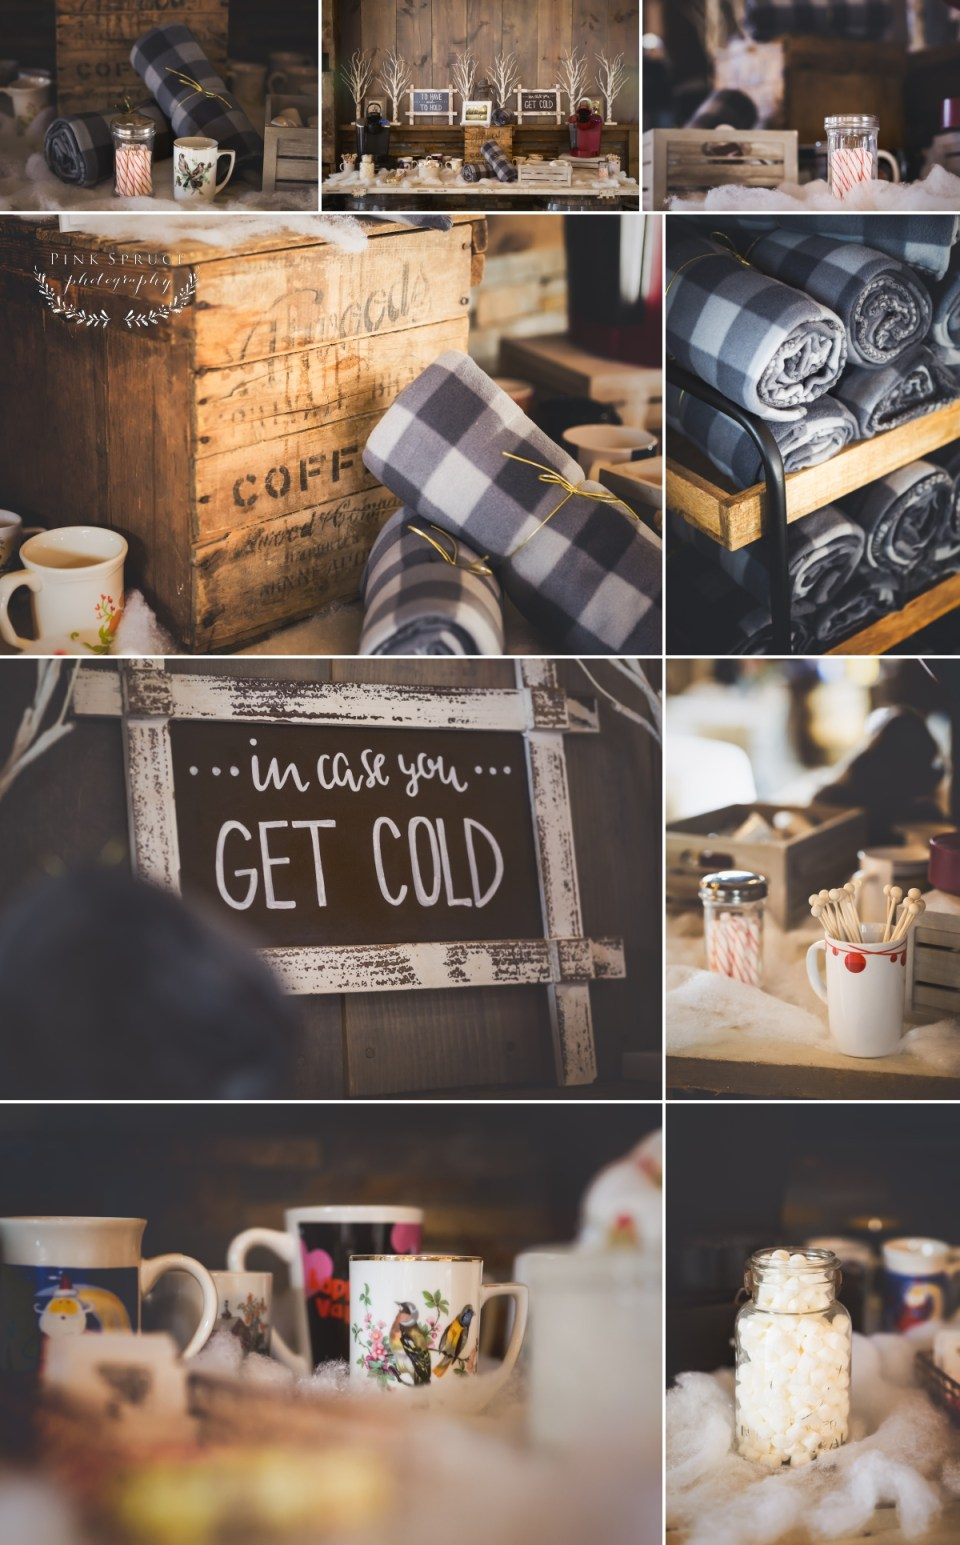 Hot Cocoa Bar for Rustic Winter Wedding at Pedretti's Party Barn, Viroqua, WI | Photography by: Pink Spruce Photography www.pinksprucephotography.com | Lesbian Wedding, Same Sex Wedding, Wisconsin Wedding